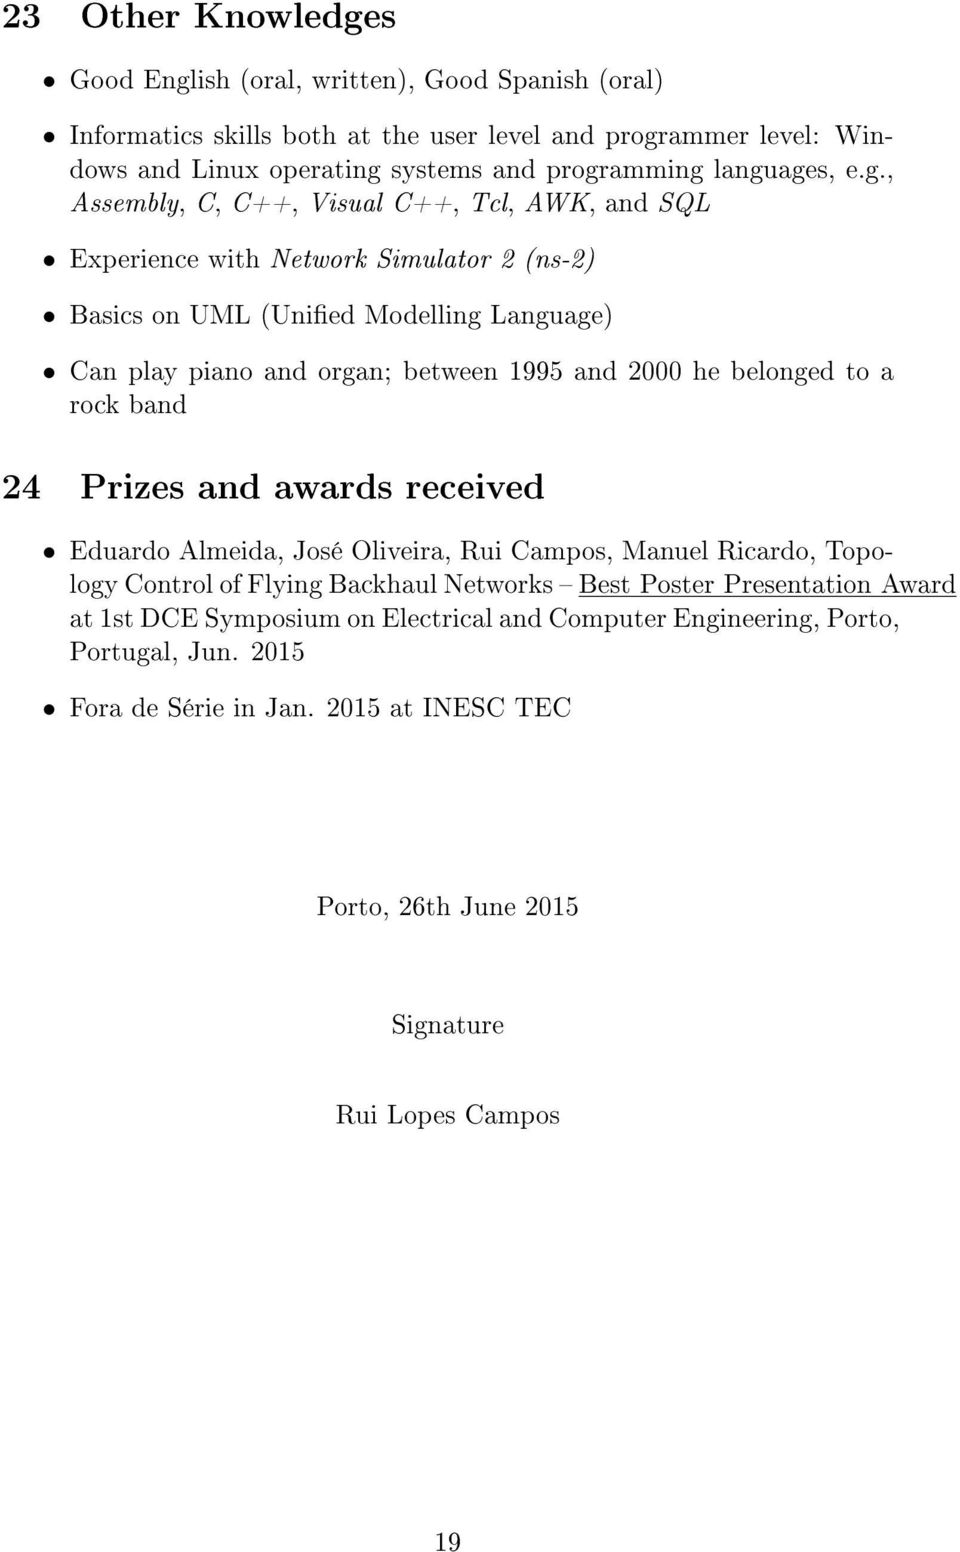 and 2000 he belonged to a rock band 24 Prizes and awards received Eduardo Almeida, José Oliveira, Rui Campos, Manuel Ricardo, Topology Control of Flying Backhaul Networks Best Poster